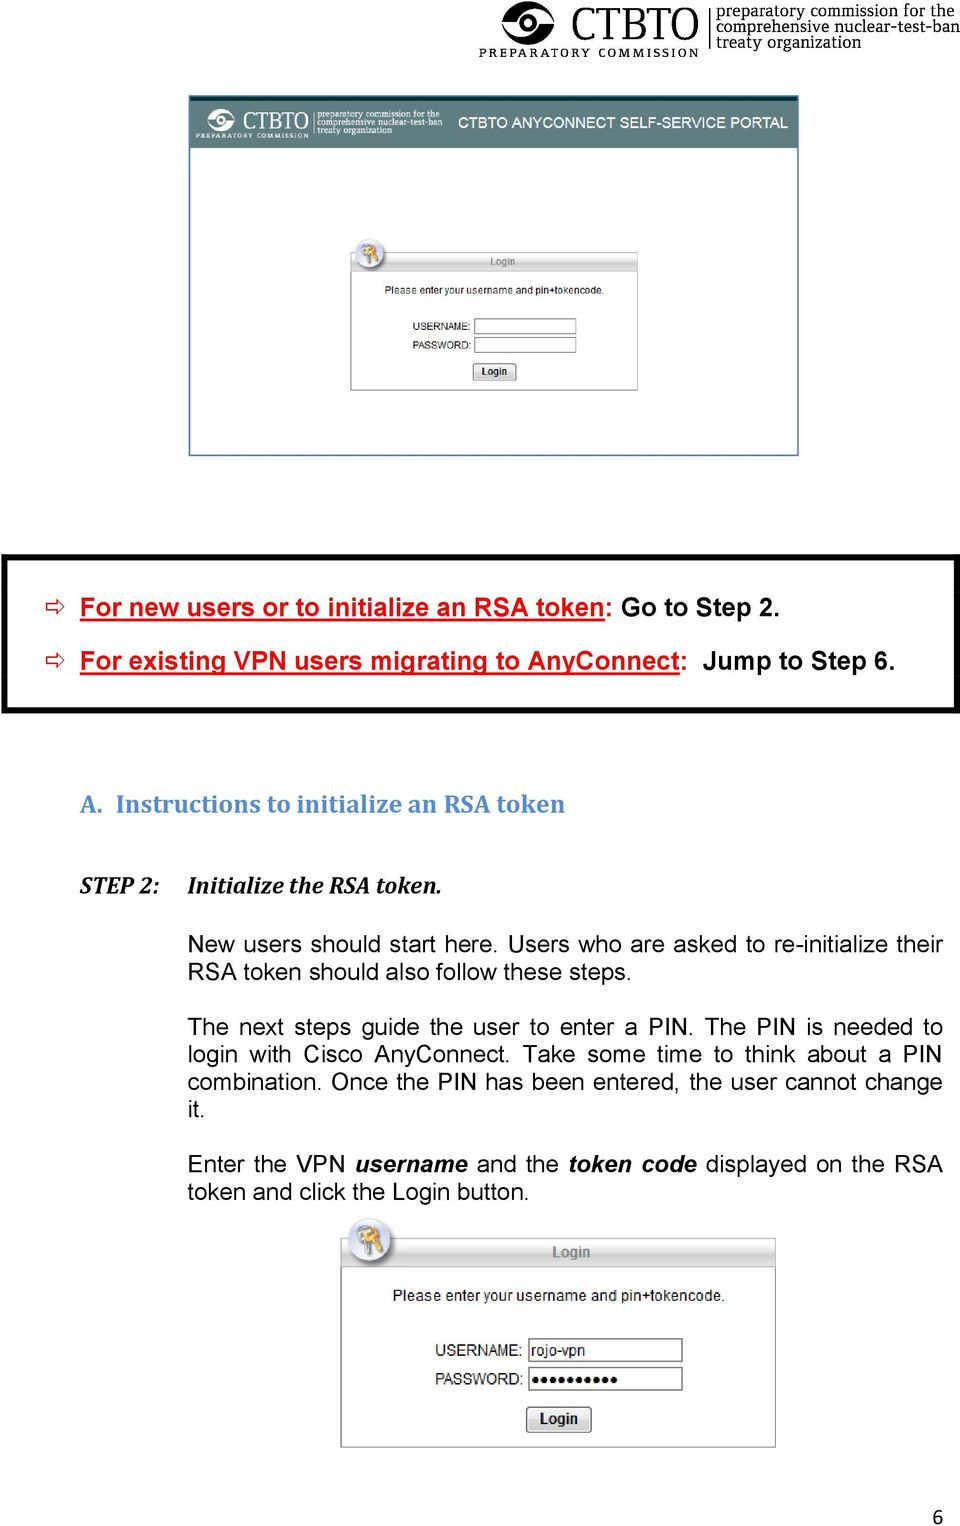 Users who are asked to re-initialize their RSA token should also follow these steps. The next steps guide the user to enter a PIN.